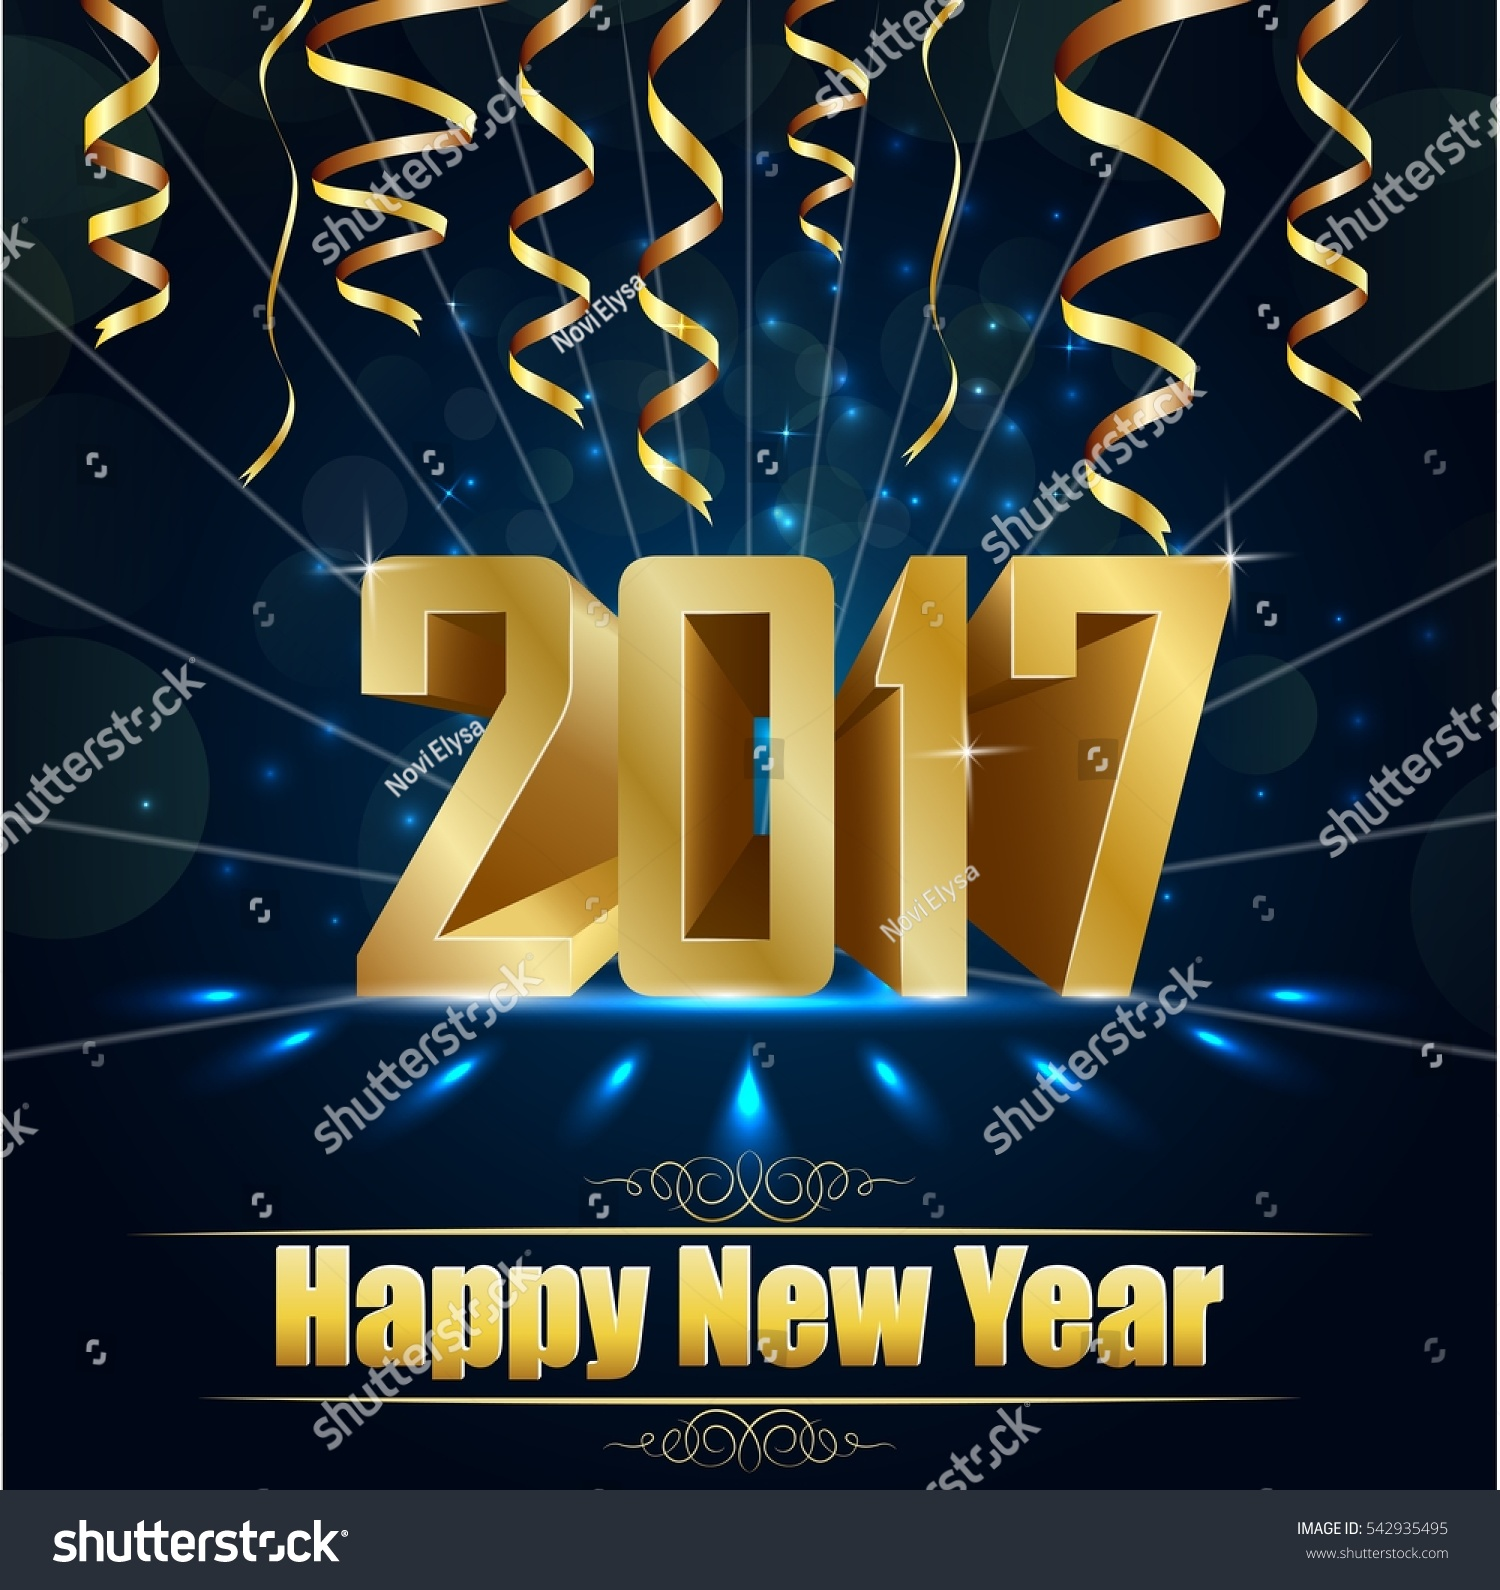 Happy new year for 2017 background with golden confetti #542935495